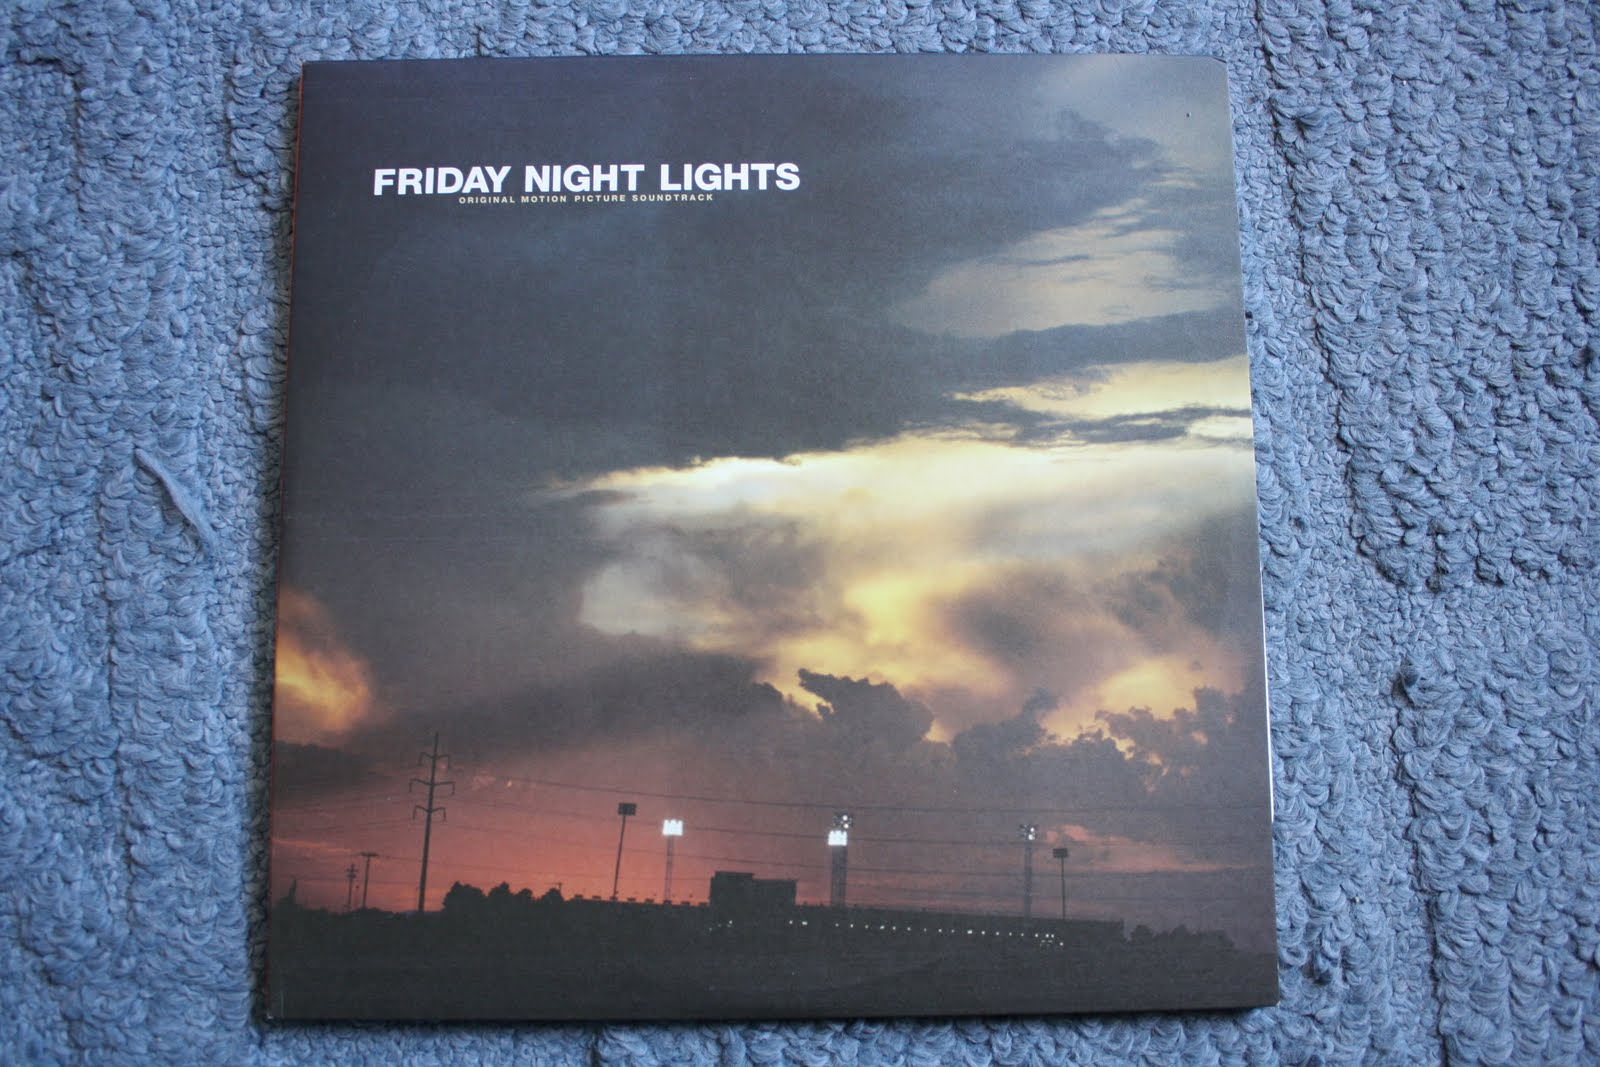 Dbd digs for vinyl april 2011 friday night lights 2004 music by explosions in the sky aloadofball Image collections